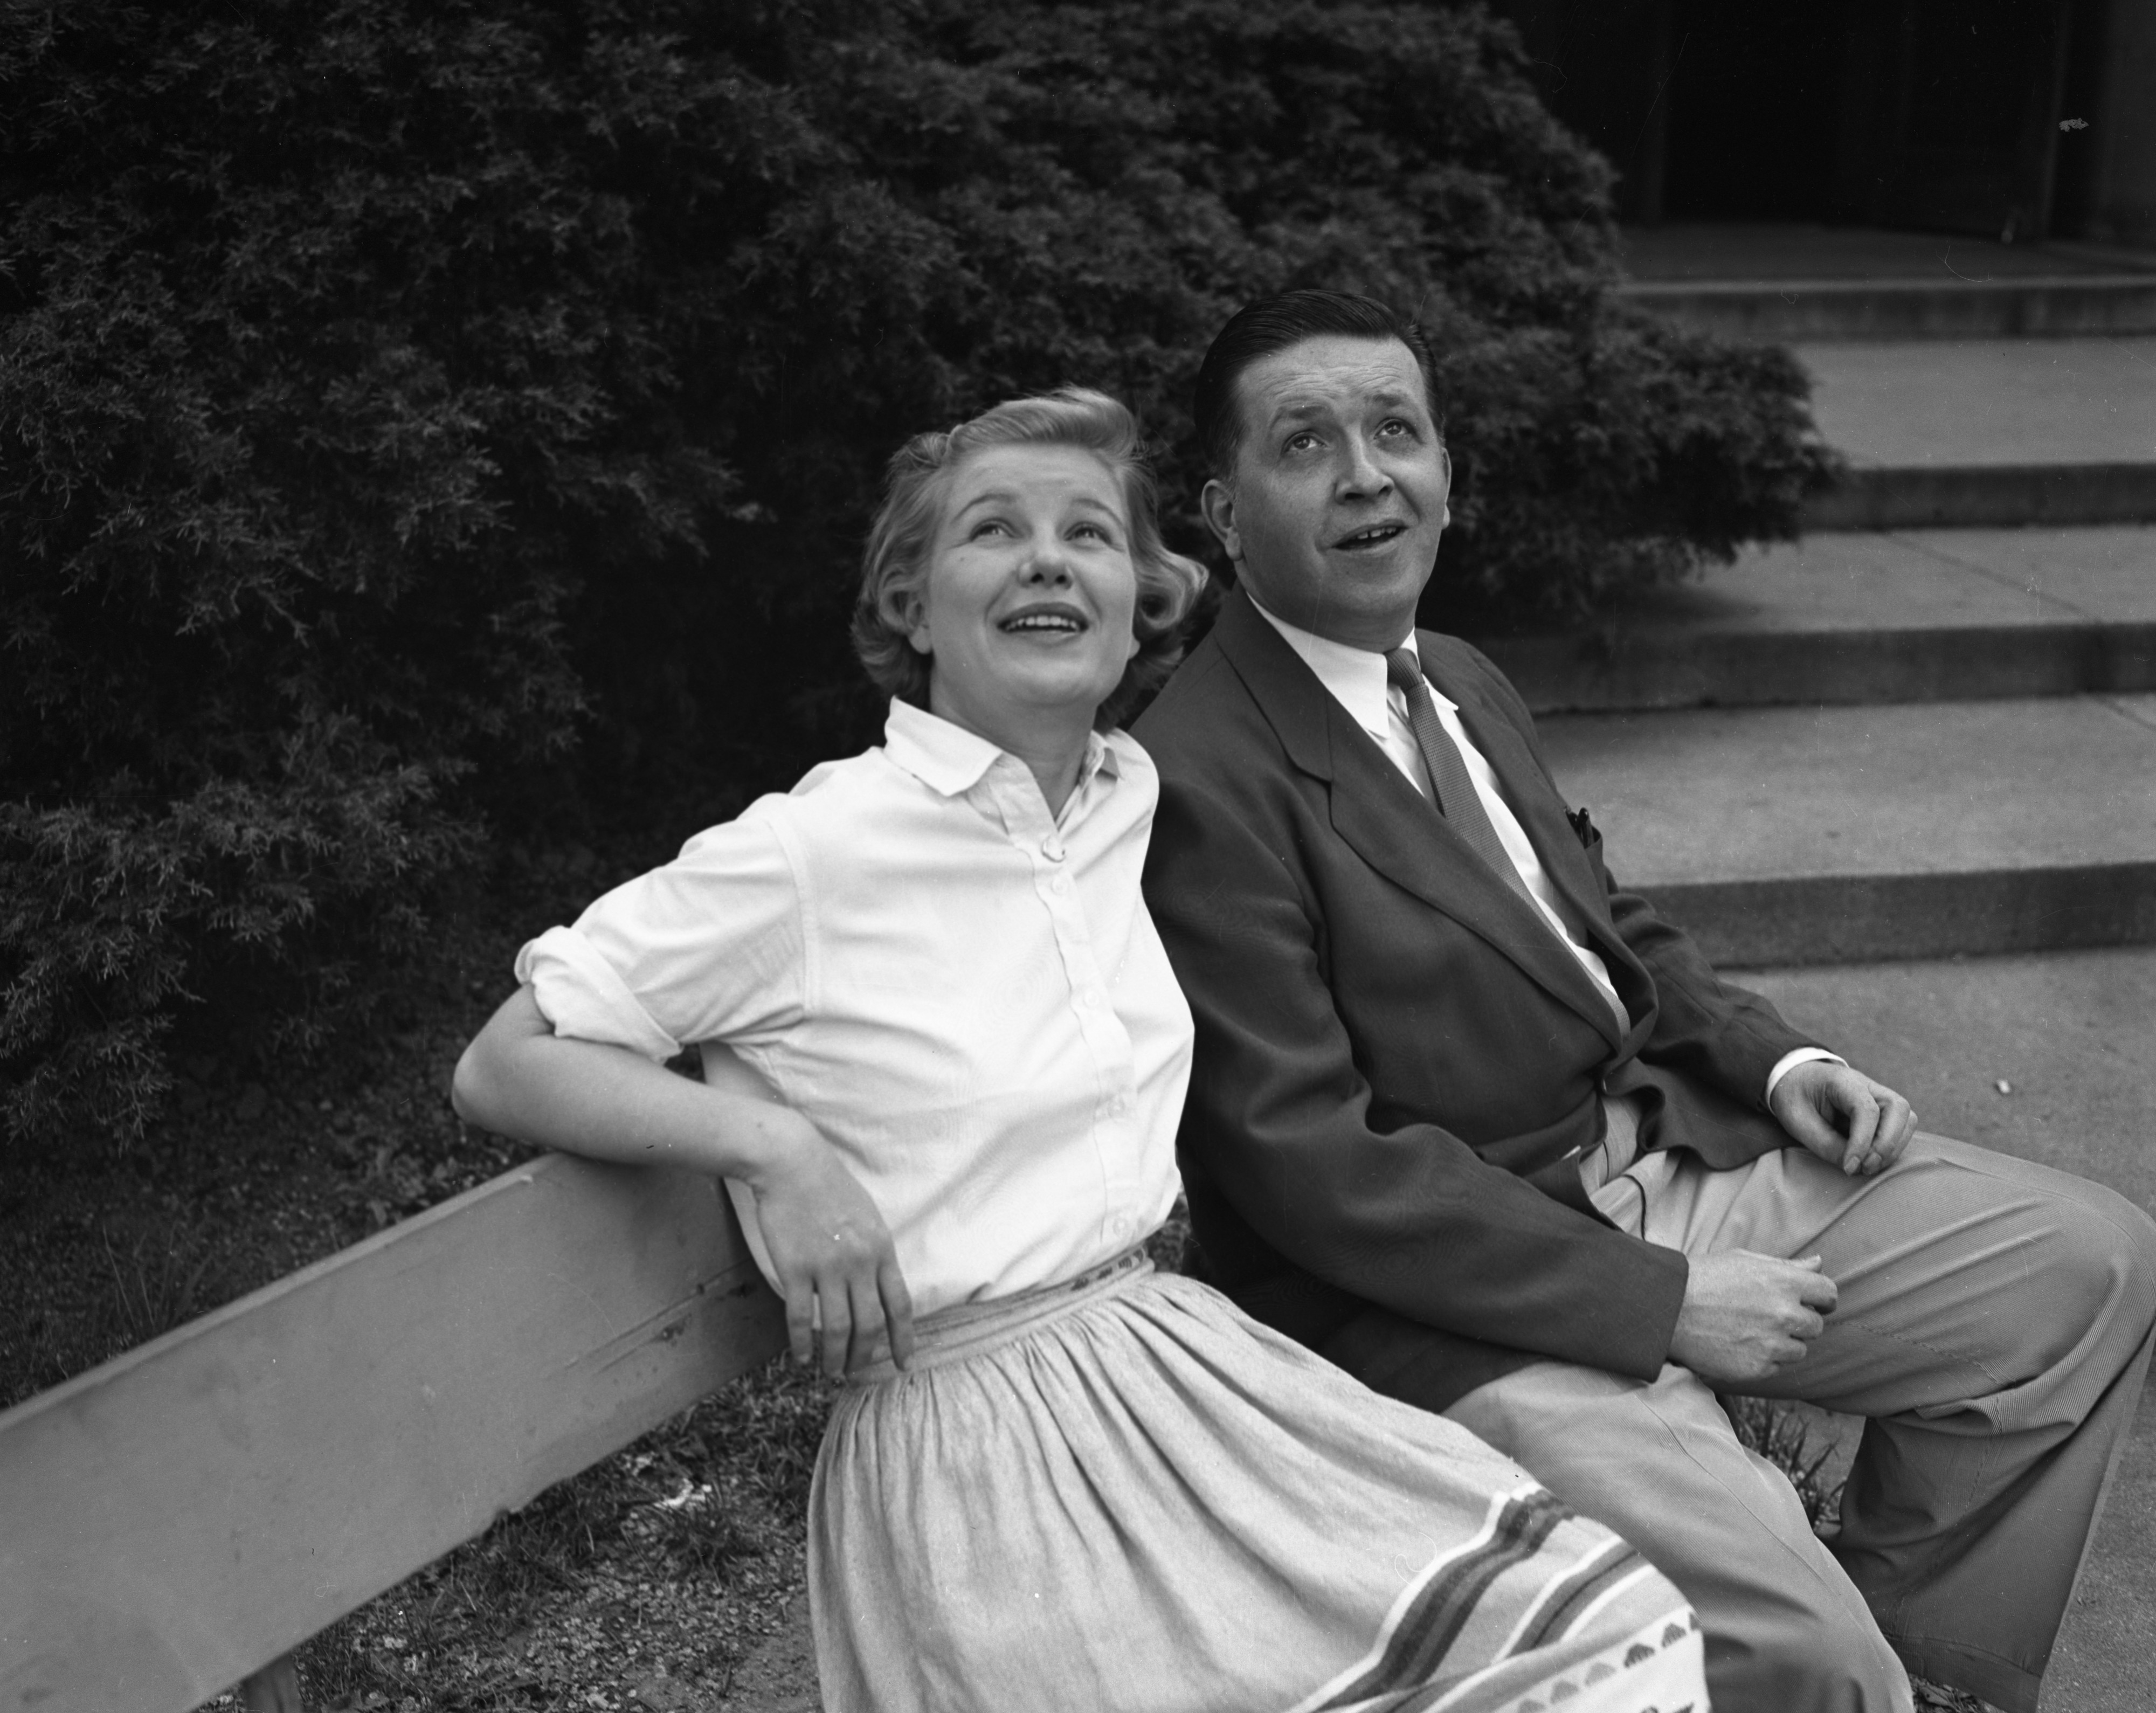 Actors Barbara Bel Geddes and Hiram Sherman on a bench outside the Michigan League, May 1954 image